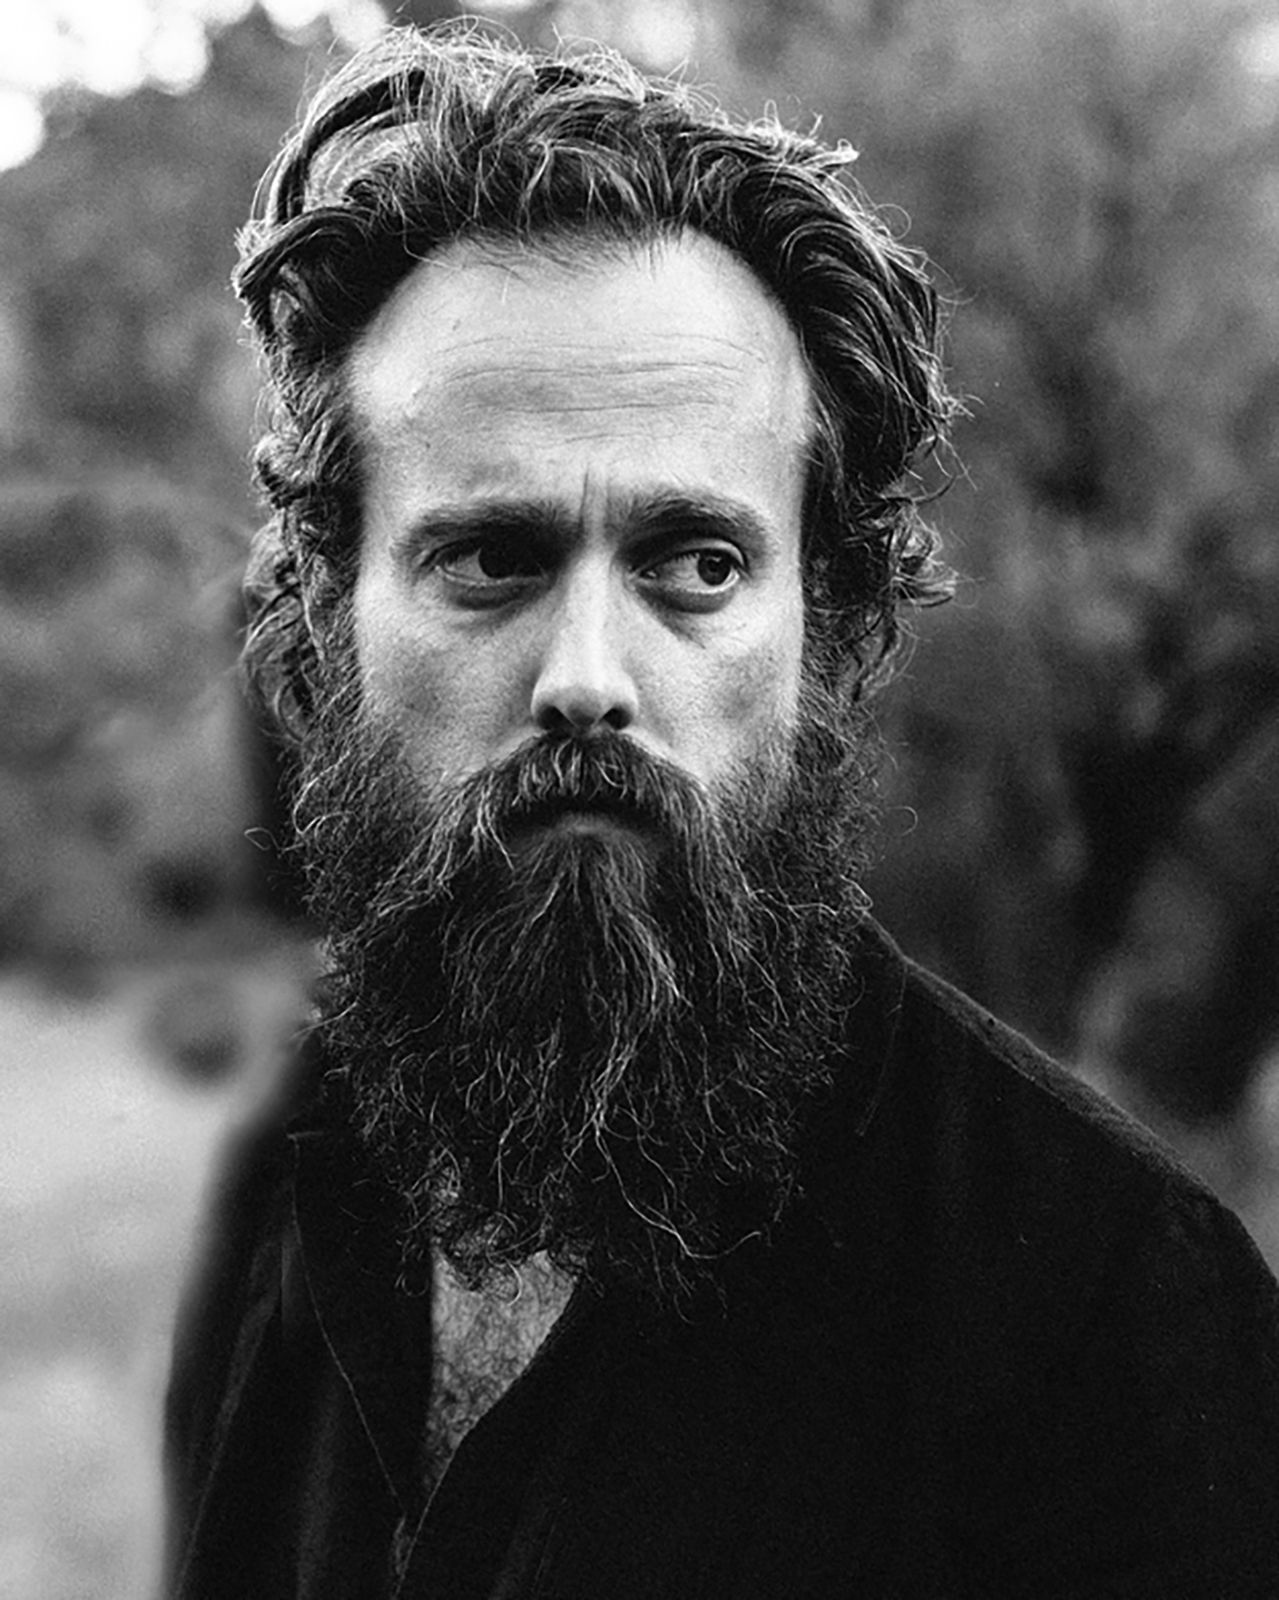 Iron and wine naked